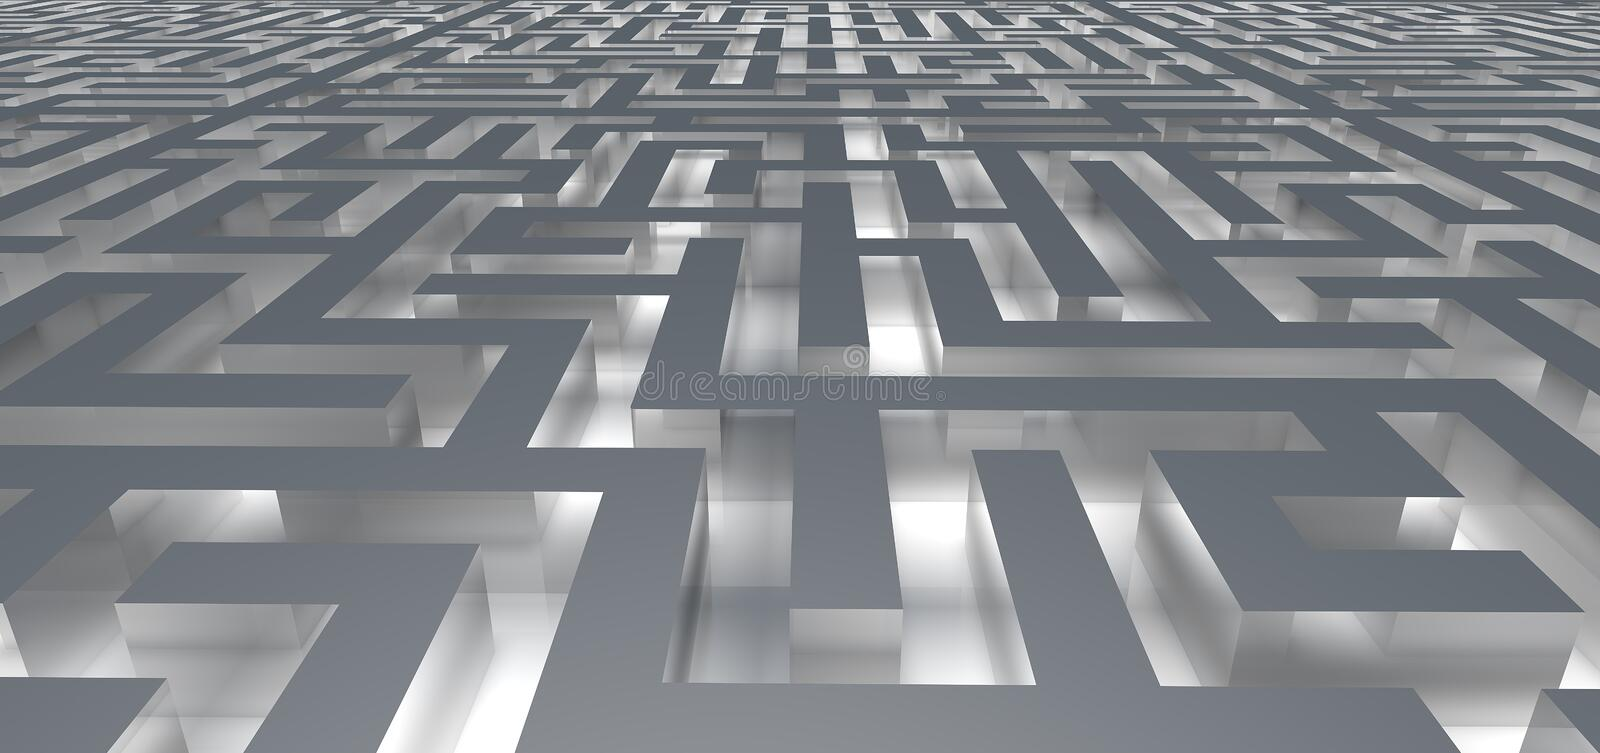 Entrance into the glow maze vector illustration